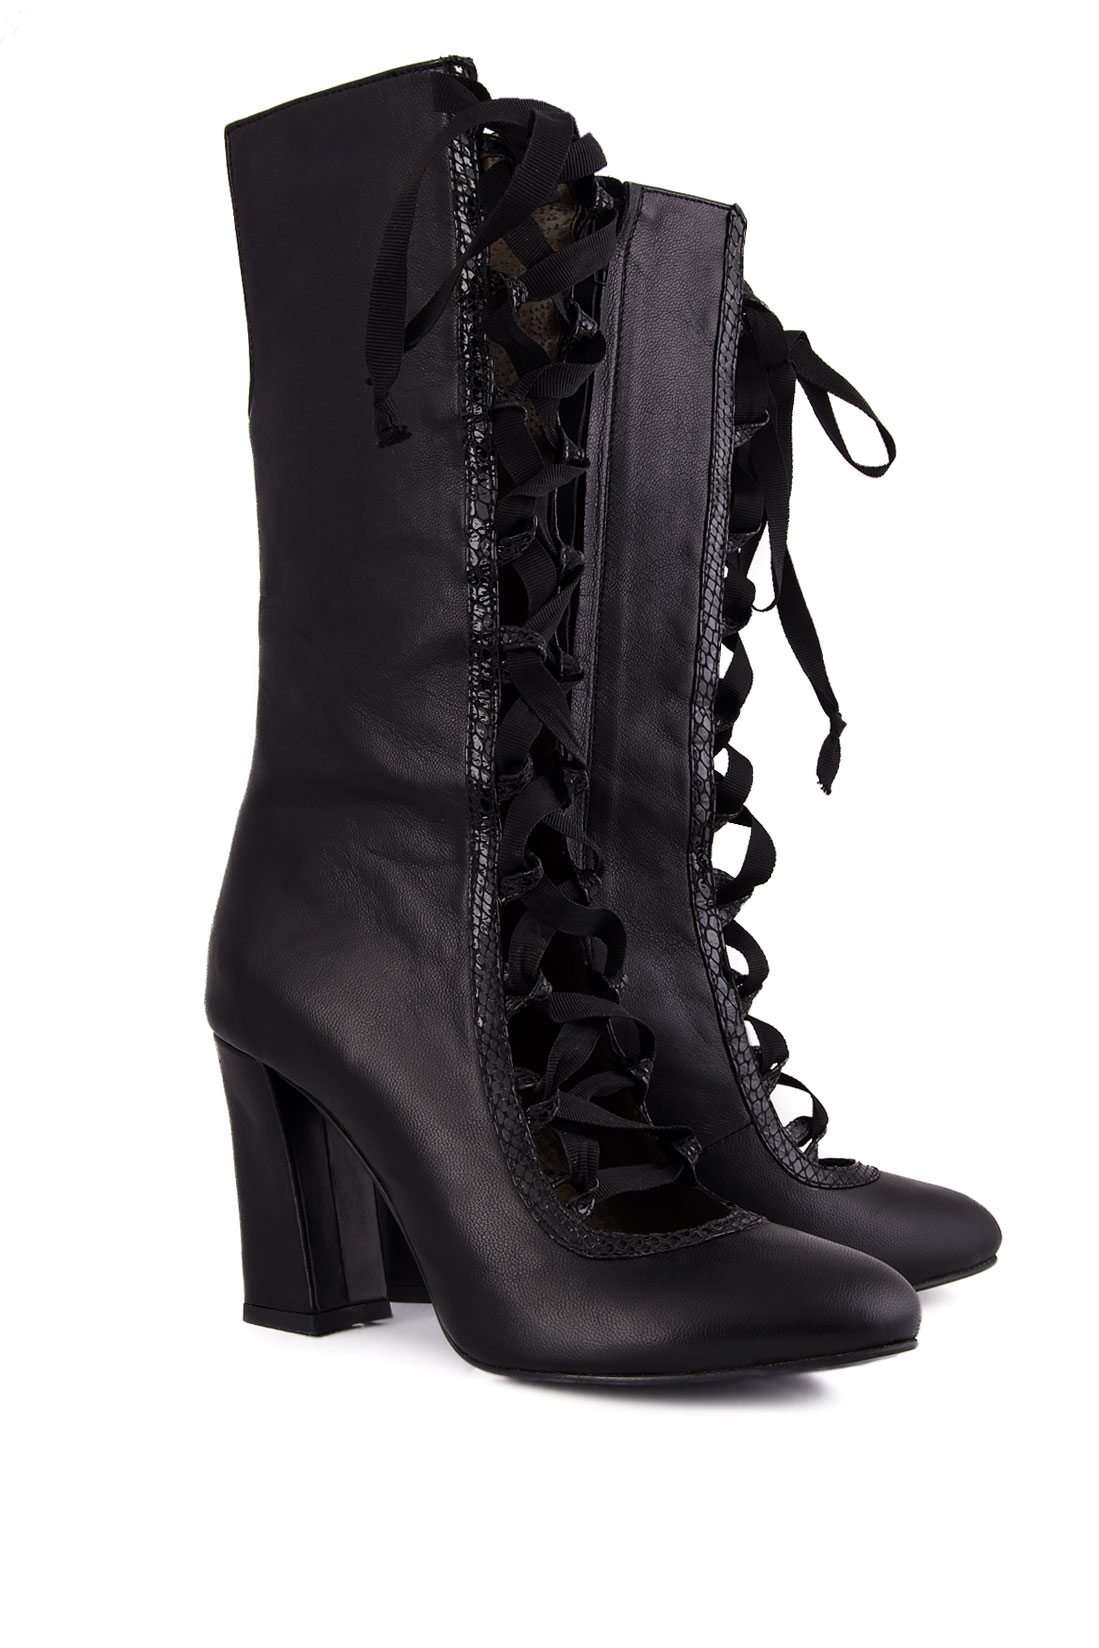 Lace-up leather boots Ana Kaloni image 1